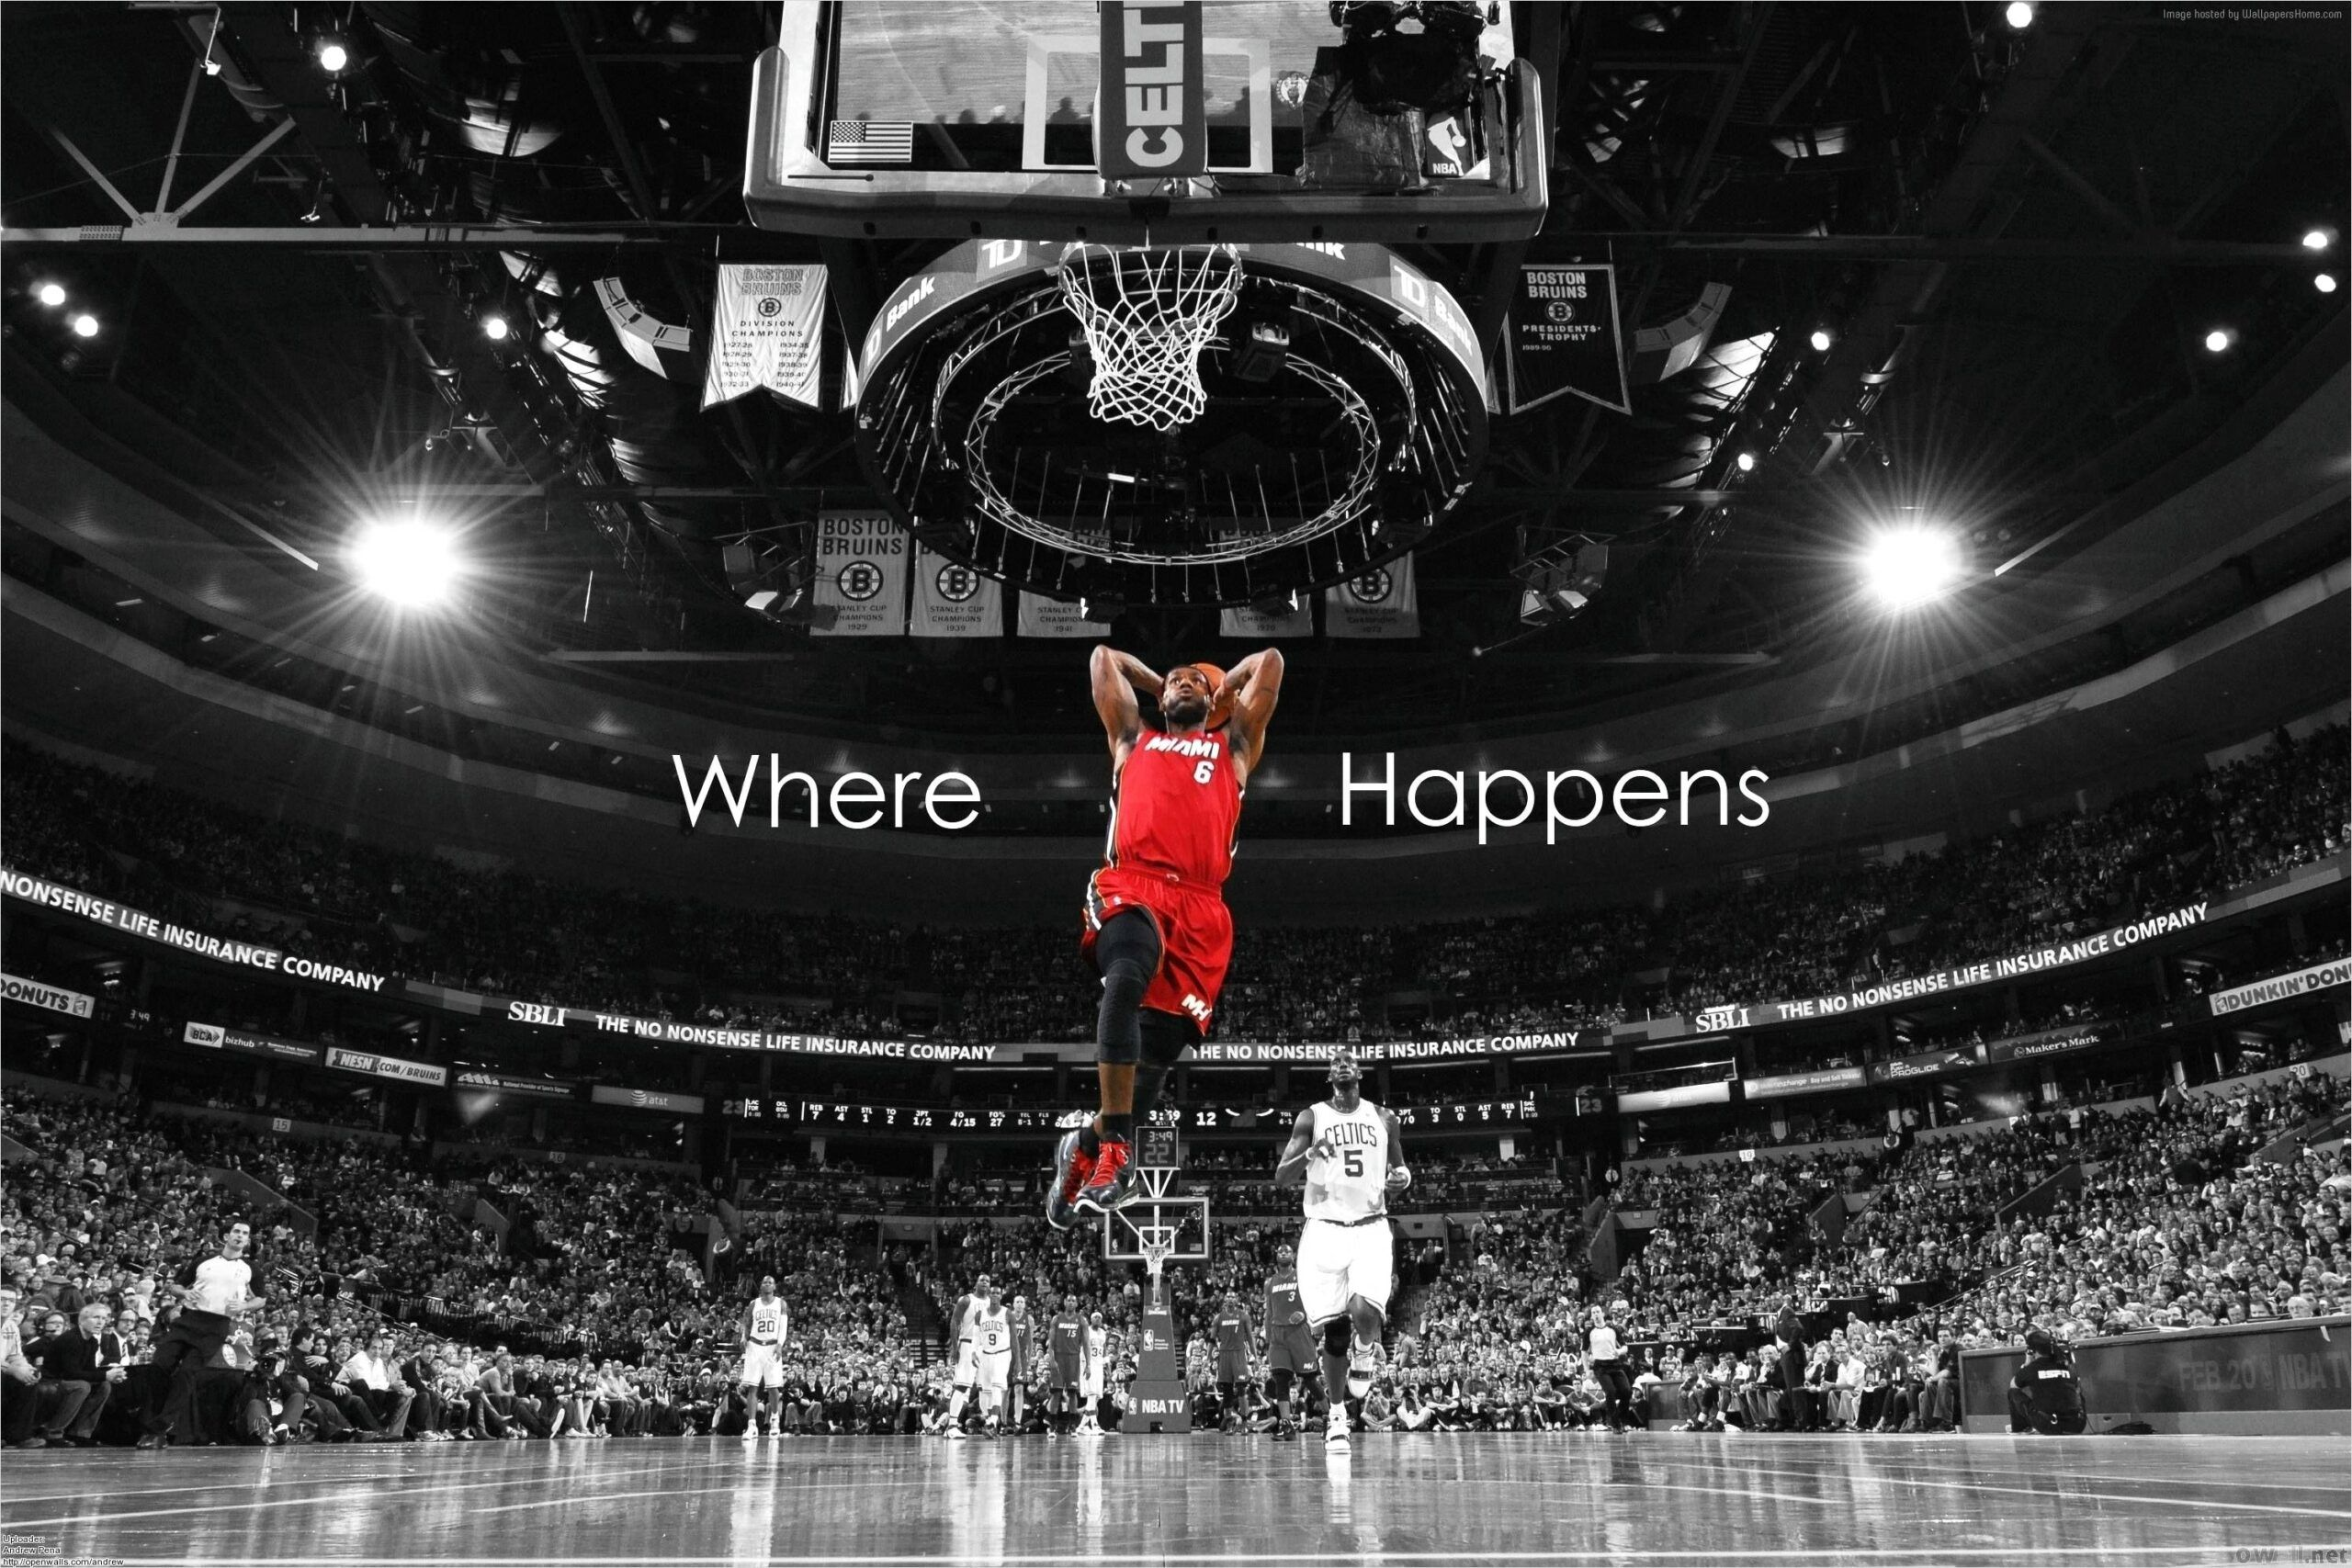 4k Miami Heat Wallpapers In 2020 Lebron James Wallpapers Lebron James Lebron James Dunking